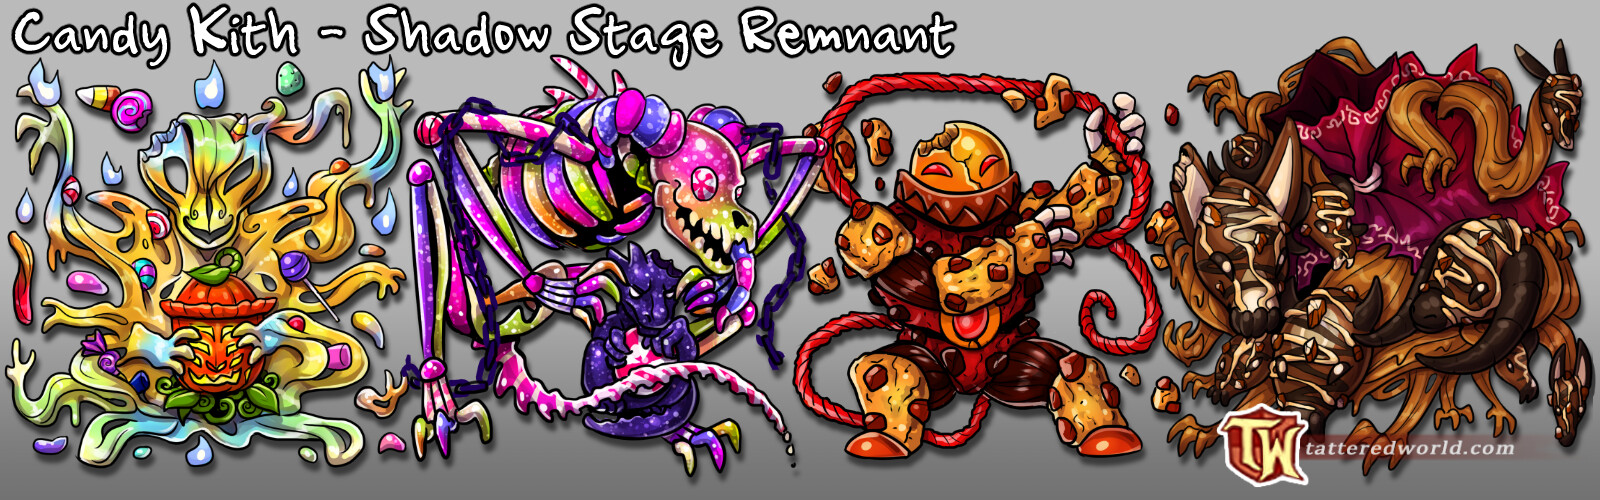 Specialty Stage - Candy Kith (Shadow Stage Remnant)